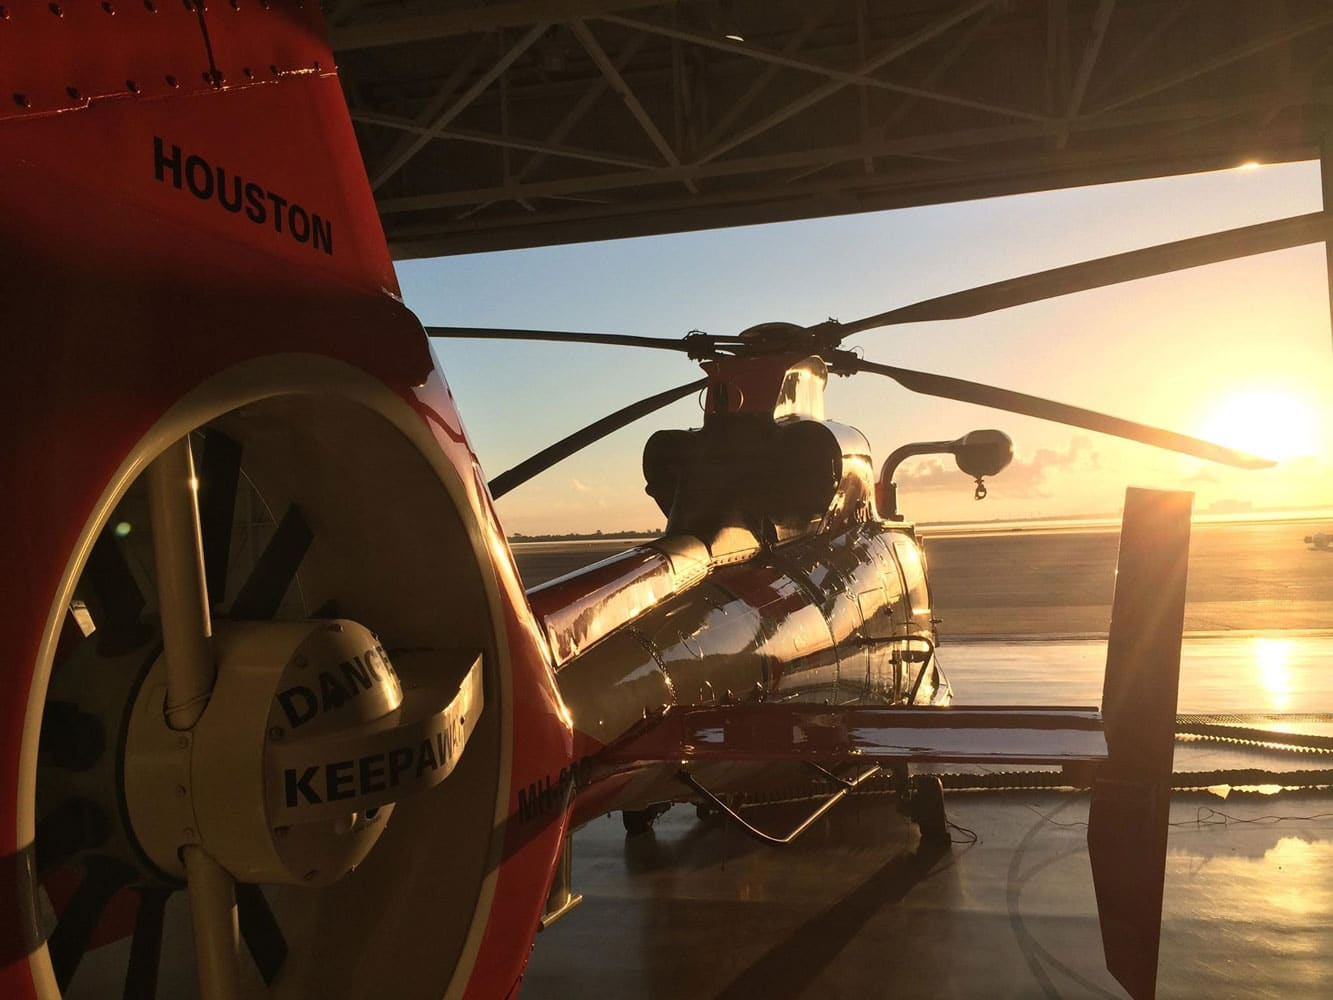 One of Air Station Houston's MH-65D Dolphin helicopters is prepped and ready to go for the day as the sun begins to rise. This helicopter represented the Coast Guard during a live hoist demonstration and a static display alongside a centennial painted MH-60T Jayhawk and a C-130 Hercules during the Wings Over Houston Air Show, which attracted over 100,000 visitors.